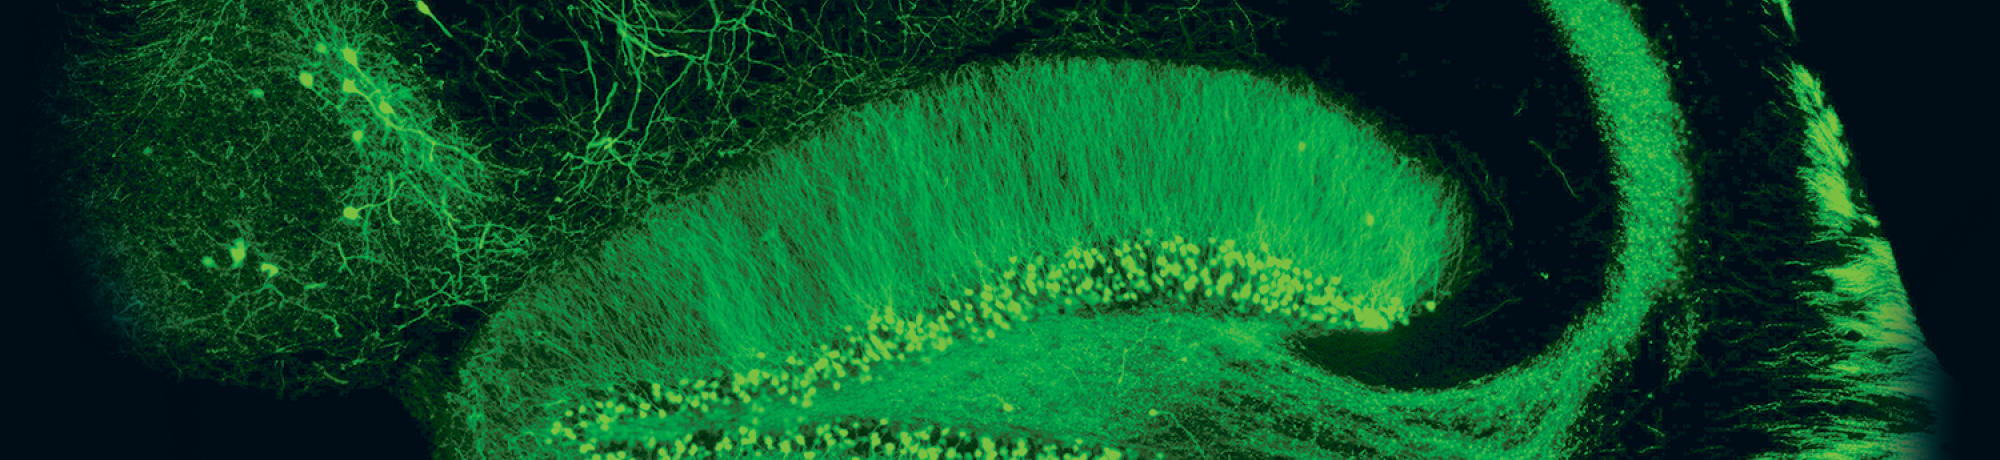 Section of mouse brain with fluorescent green stain. Image taken in Dr. Karen Zito's lab.